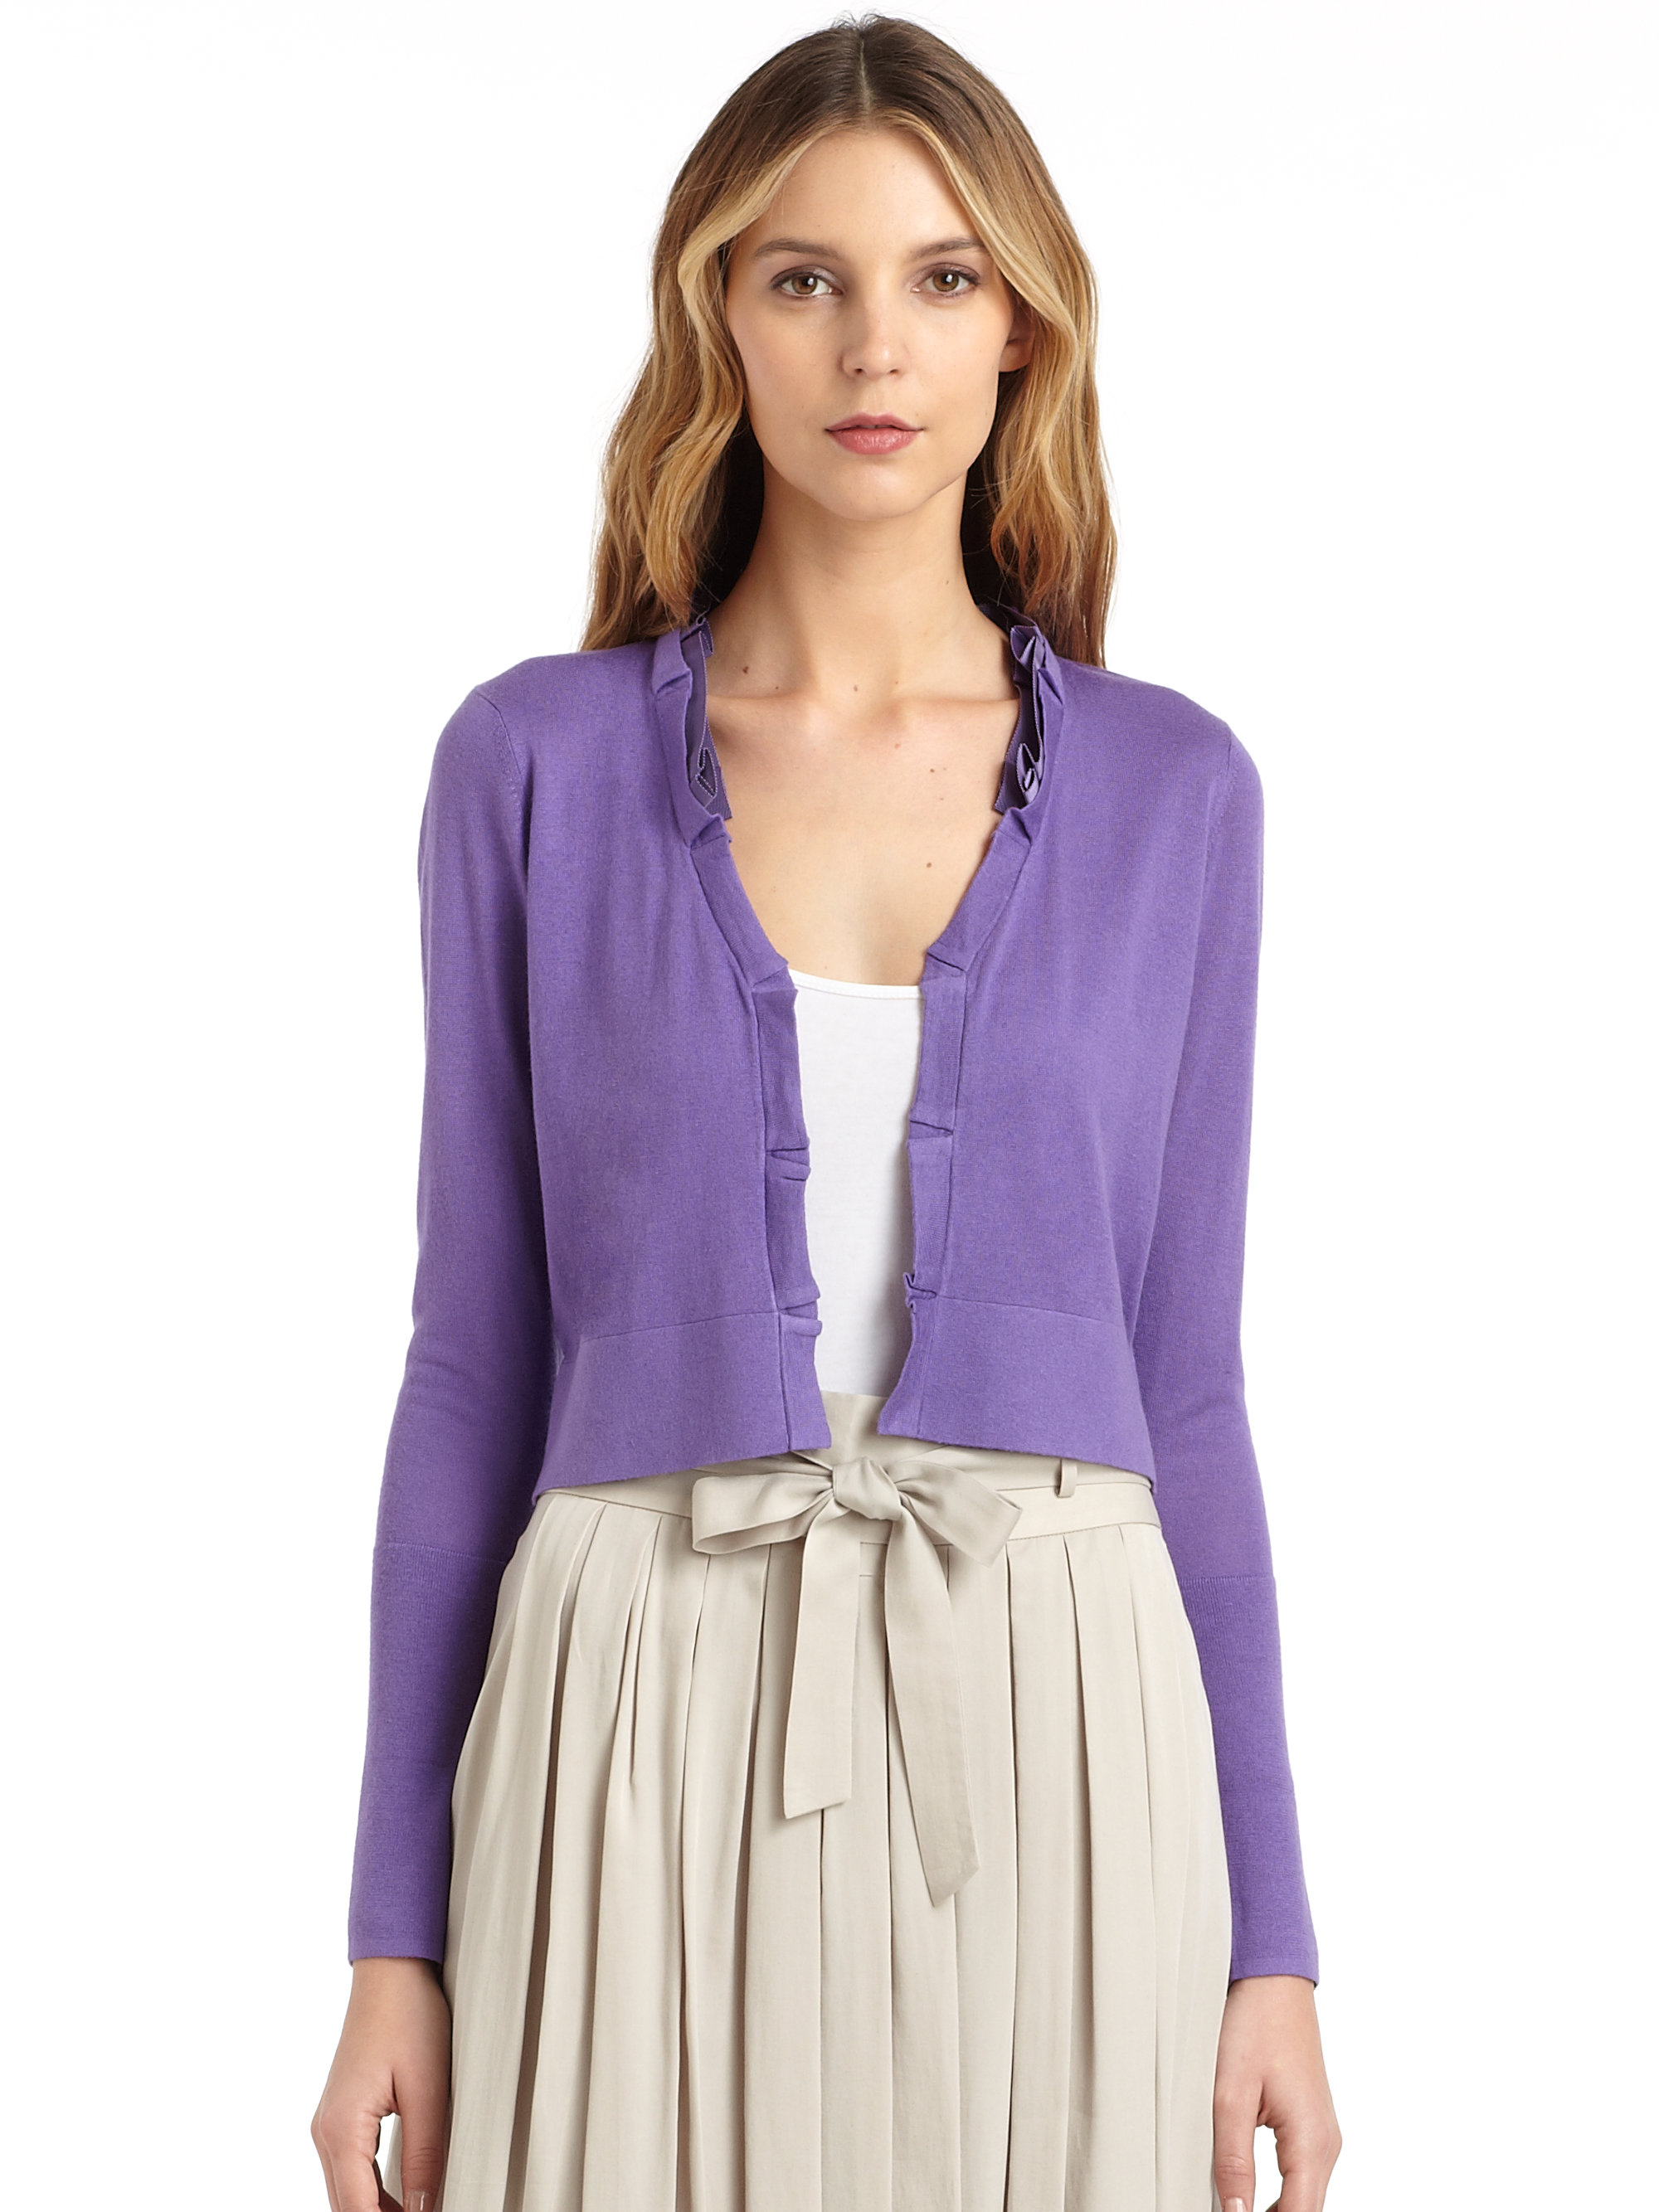 Wrap yourself in the cozy and comfy LUSH Sweetest Treat Lilac Cardigan Sweater! Soft and chunky knit shapes this must-have cardigan with an open-front design finished with patch pockets at the waist. Long balloon sleeves, with ribbed cuffs, frame the cozy look.5/5(3).